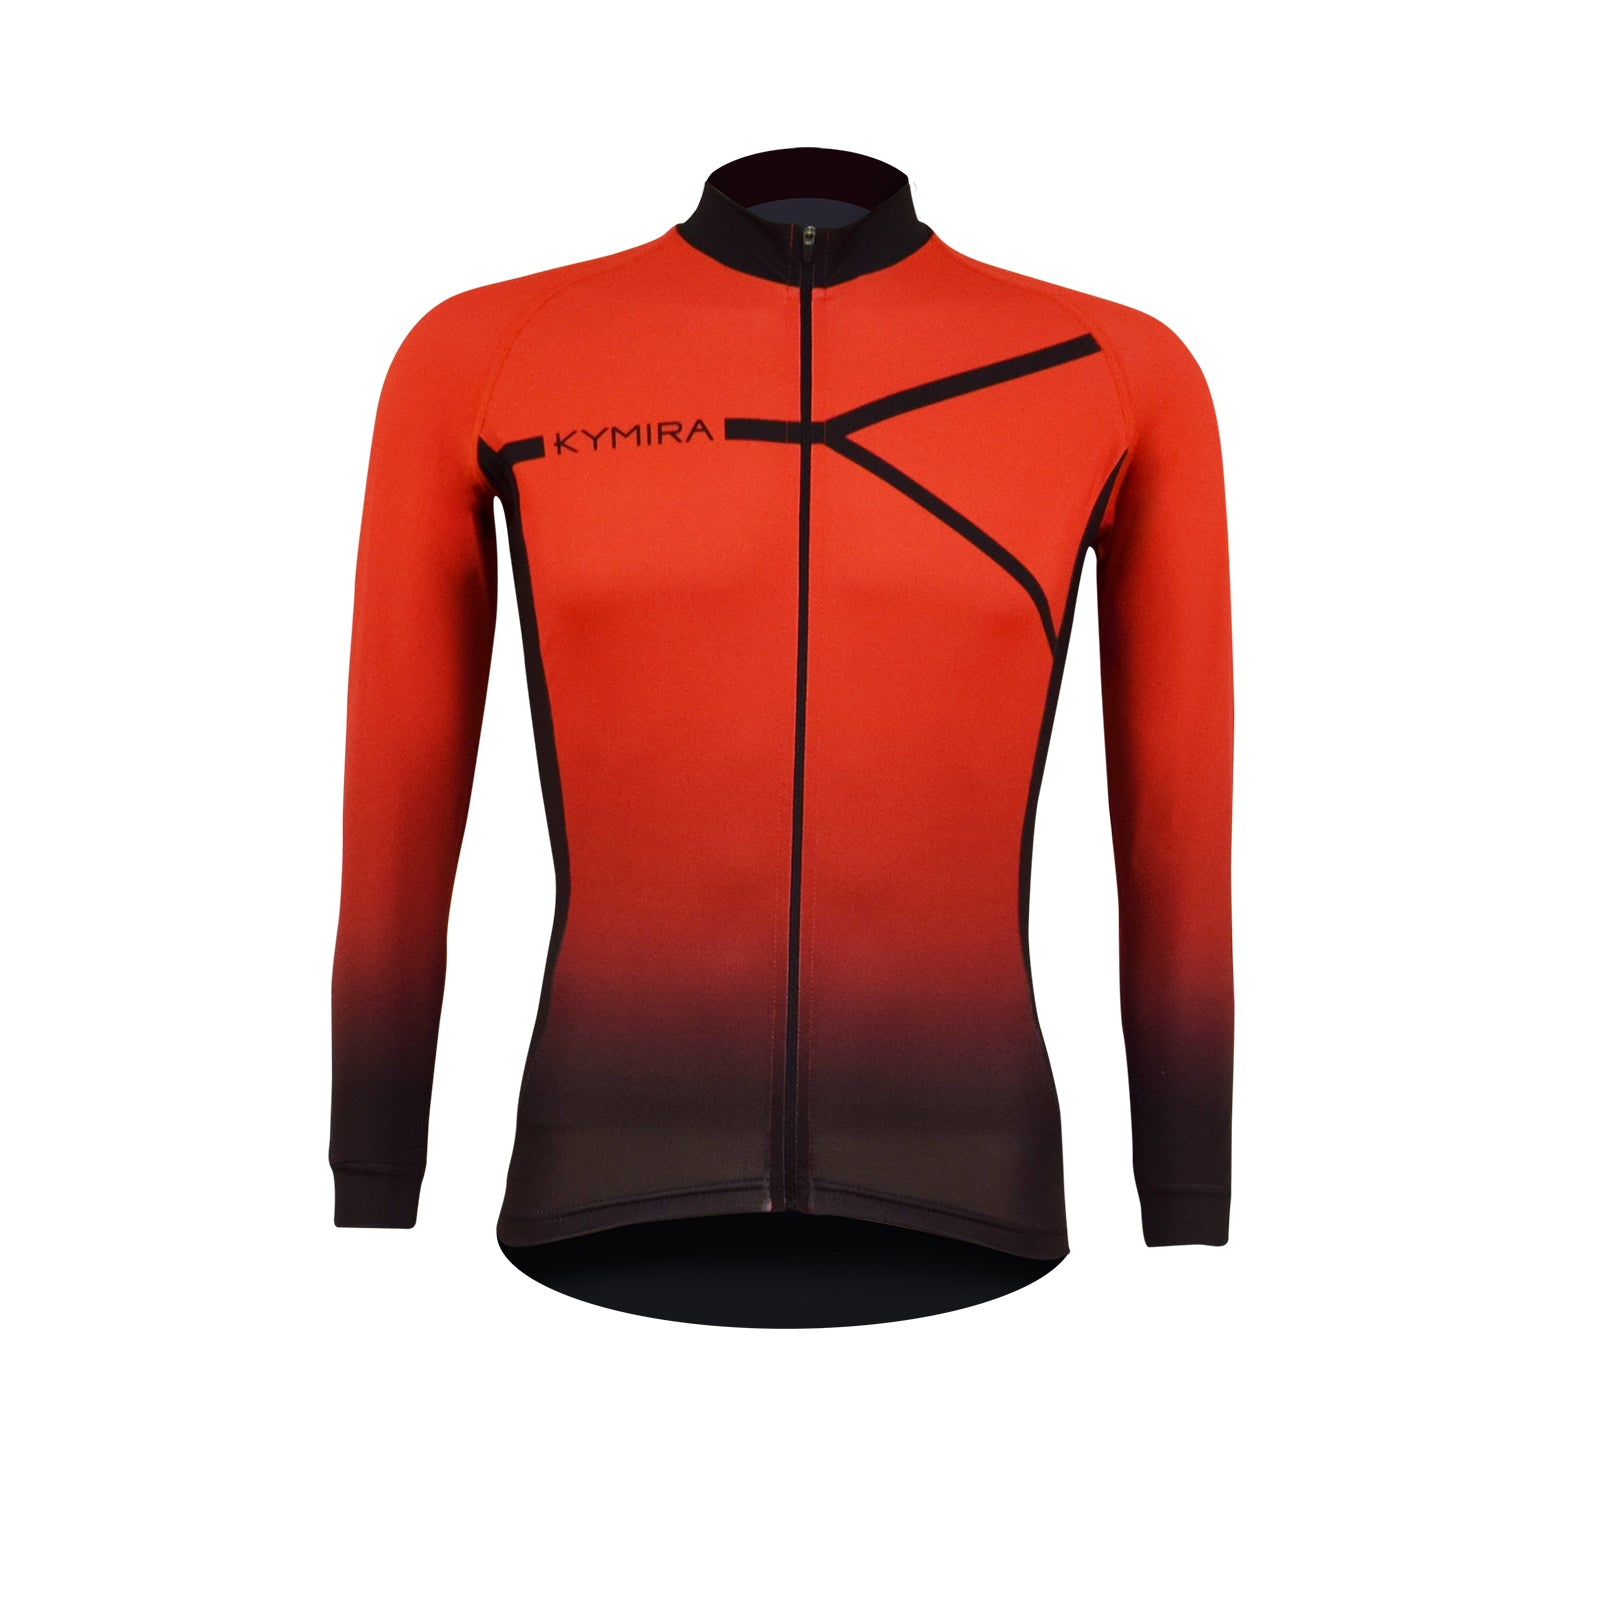 dc27b9ab116c3a Men's Infrared PrO2 Long Sleeve Cycle Jersey Red to Black | KYMIRA Sport